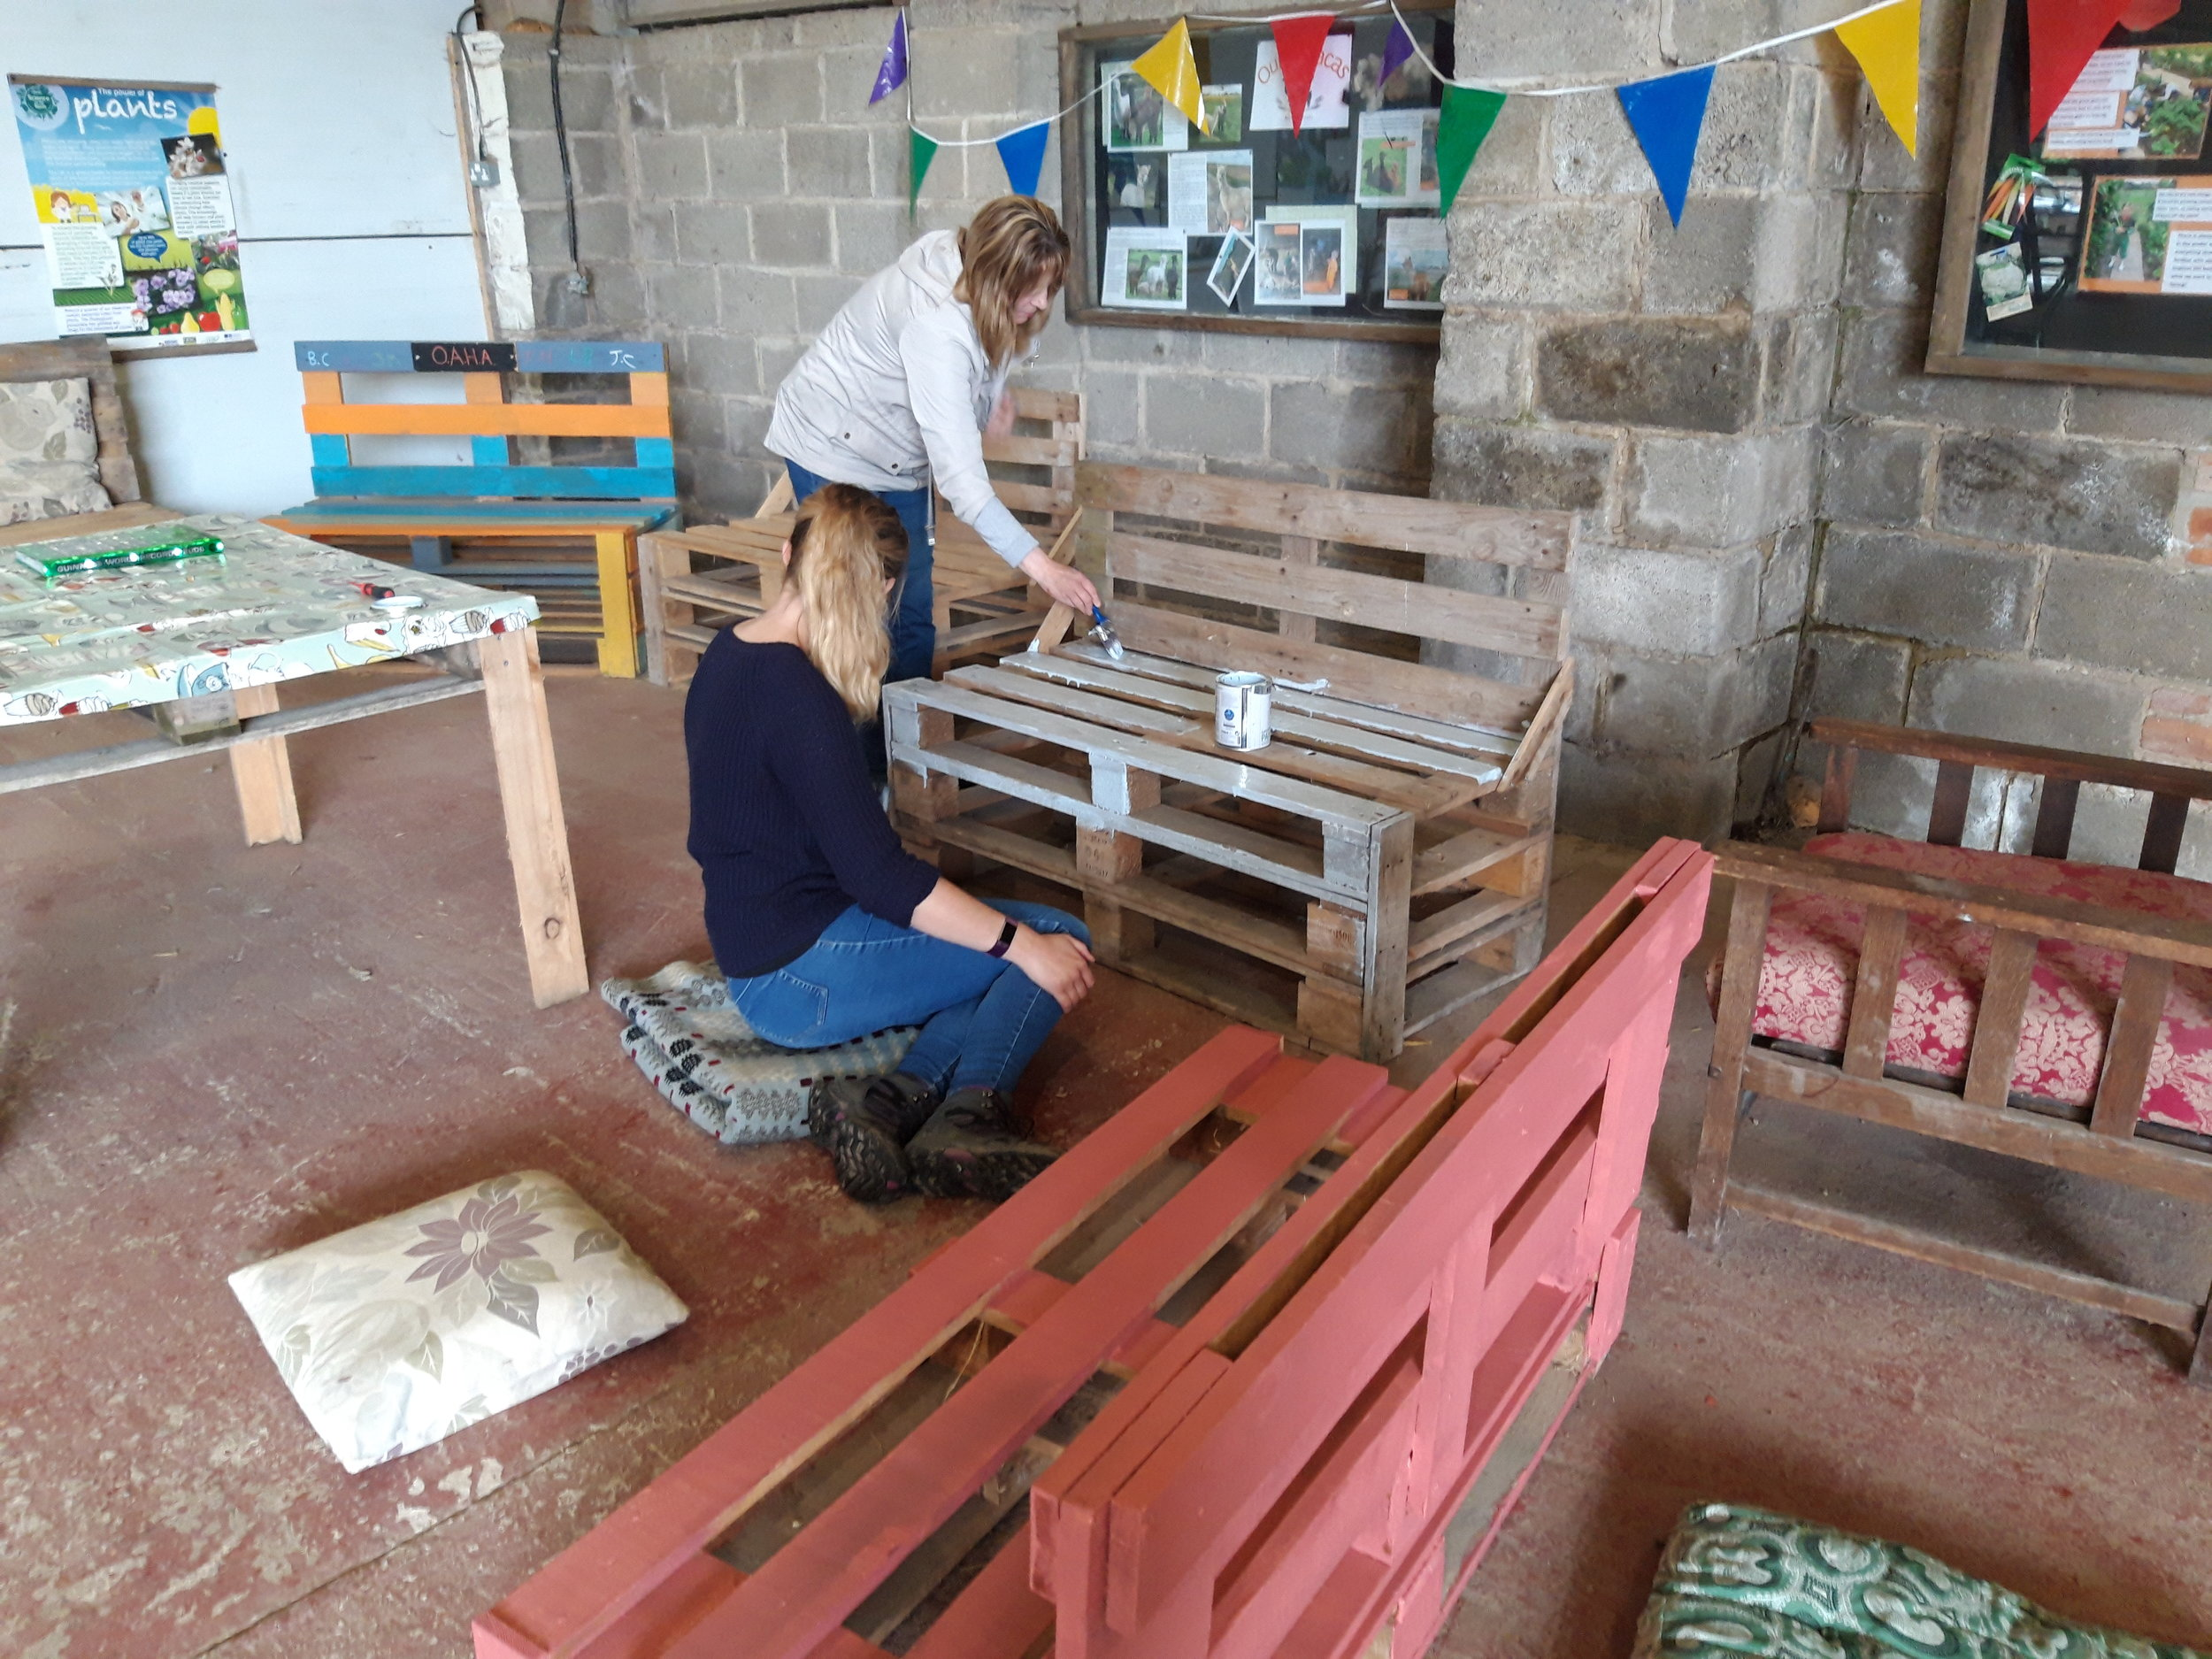 Painting benches to brighten up the farm